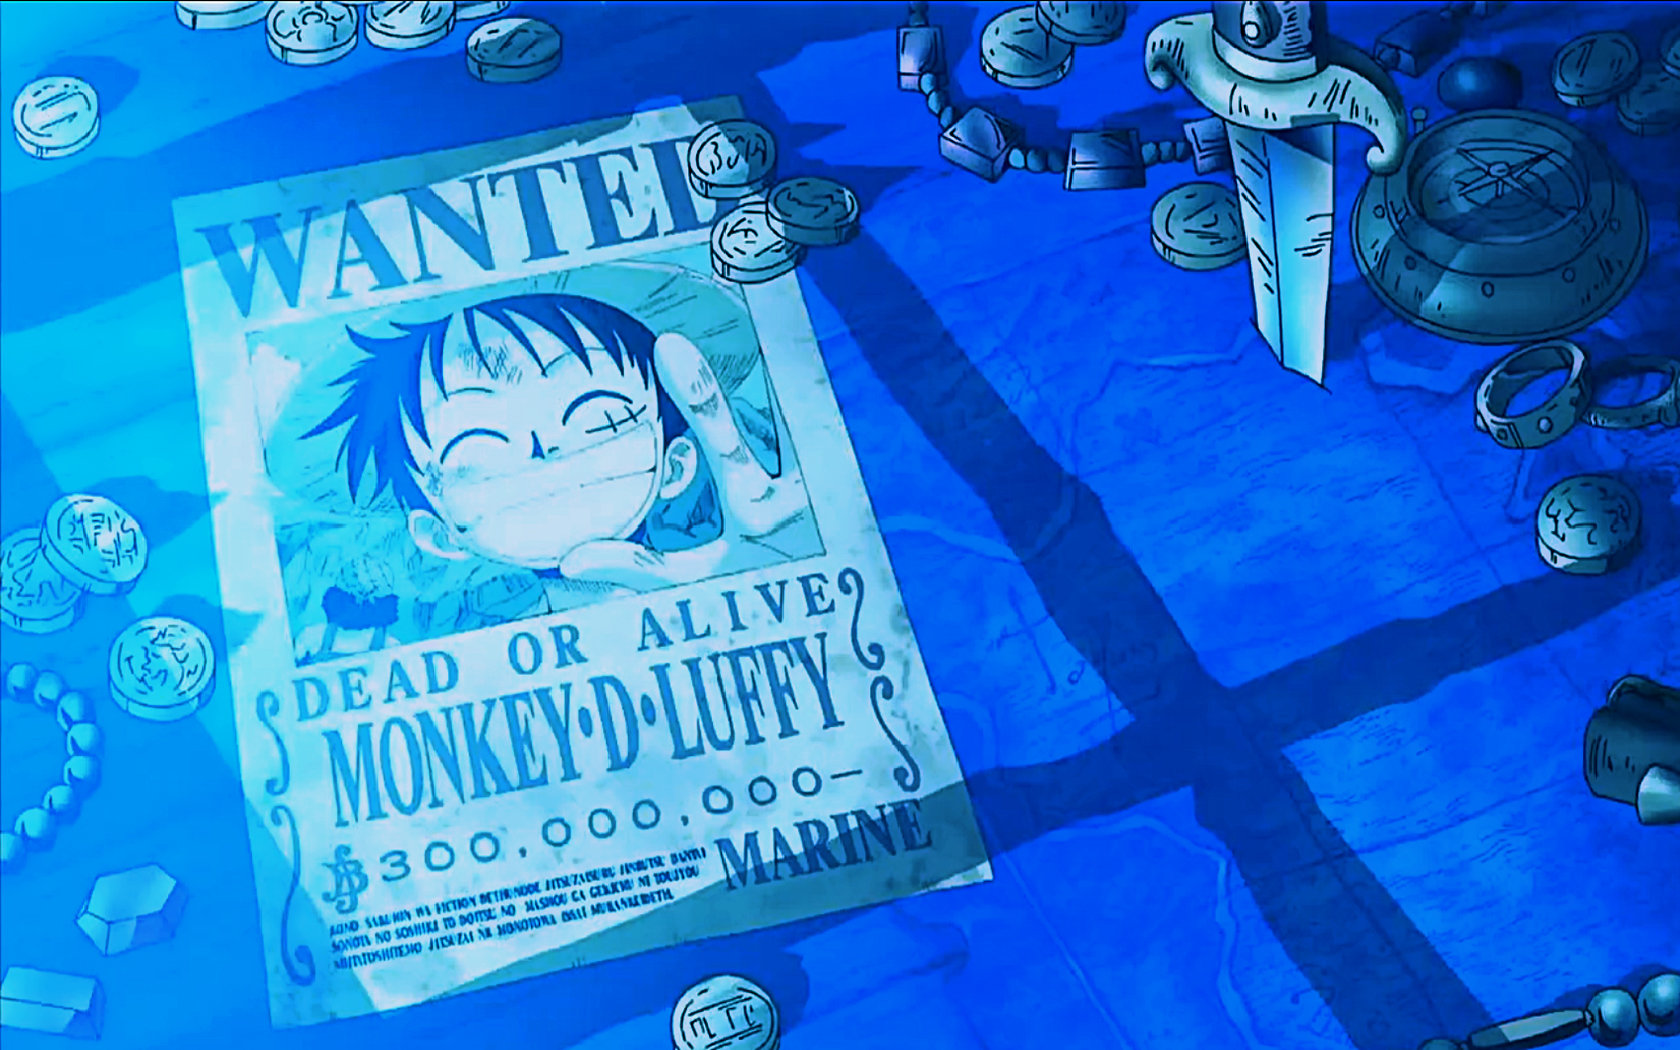 Awesome Monkey D. Luffy free wallpaper ID:314471 for hd 1680x1050 computer